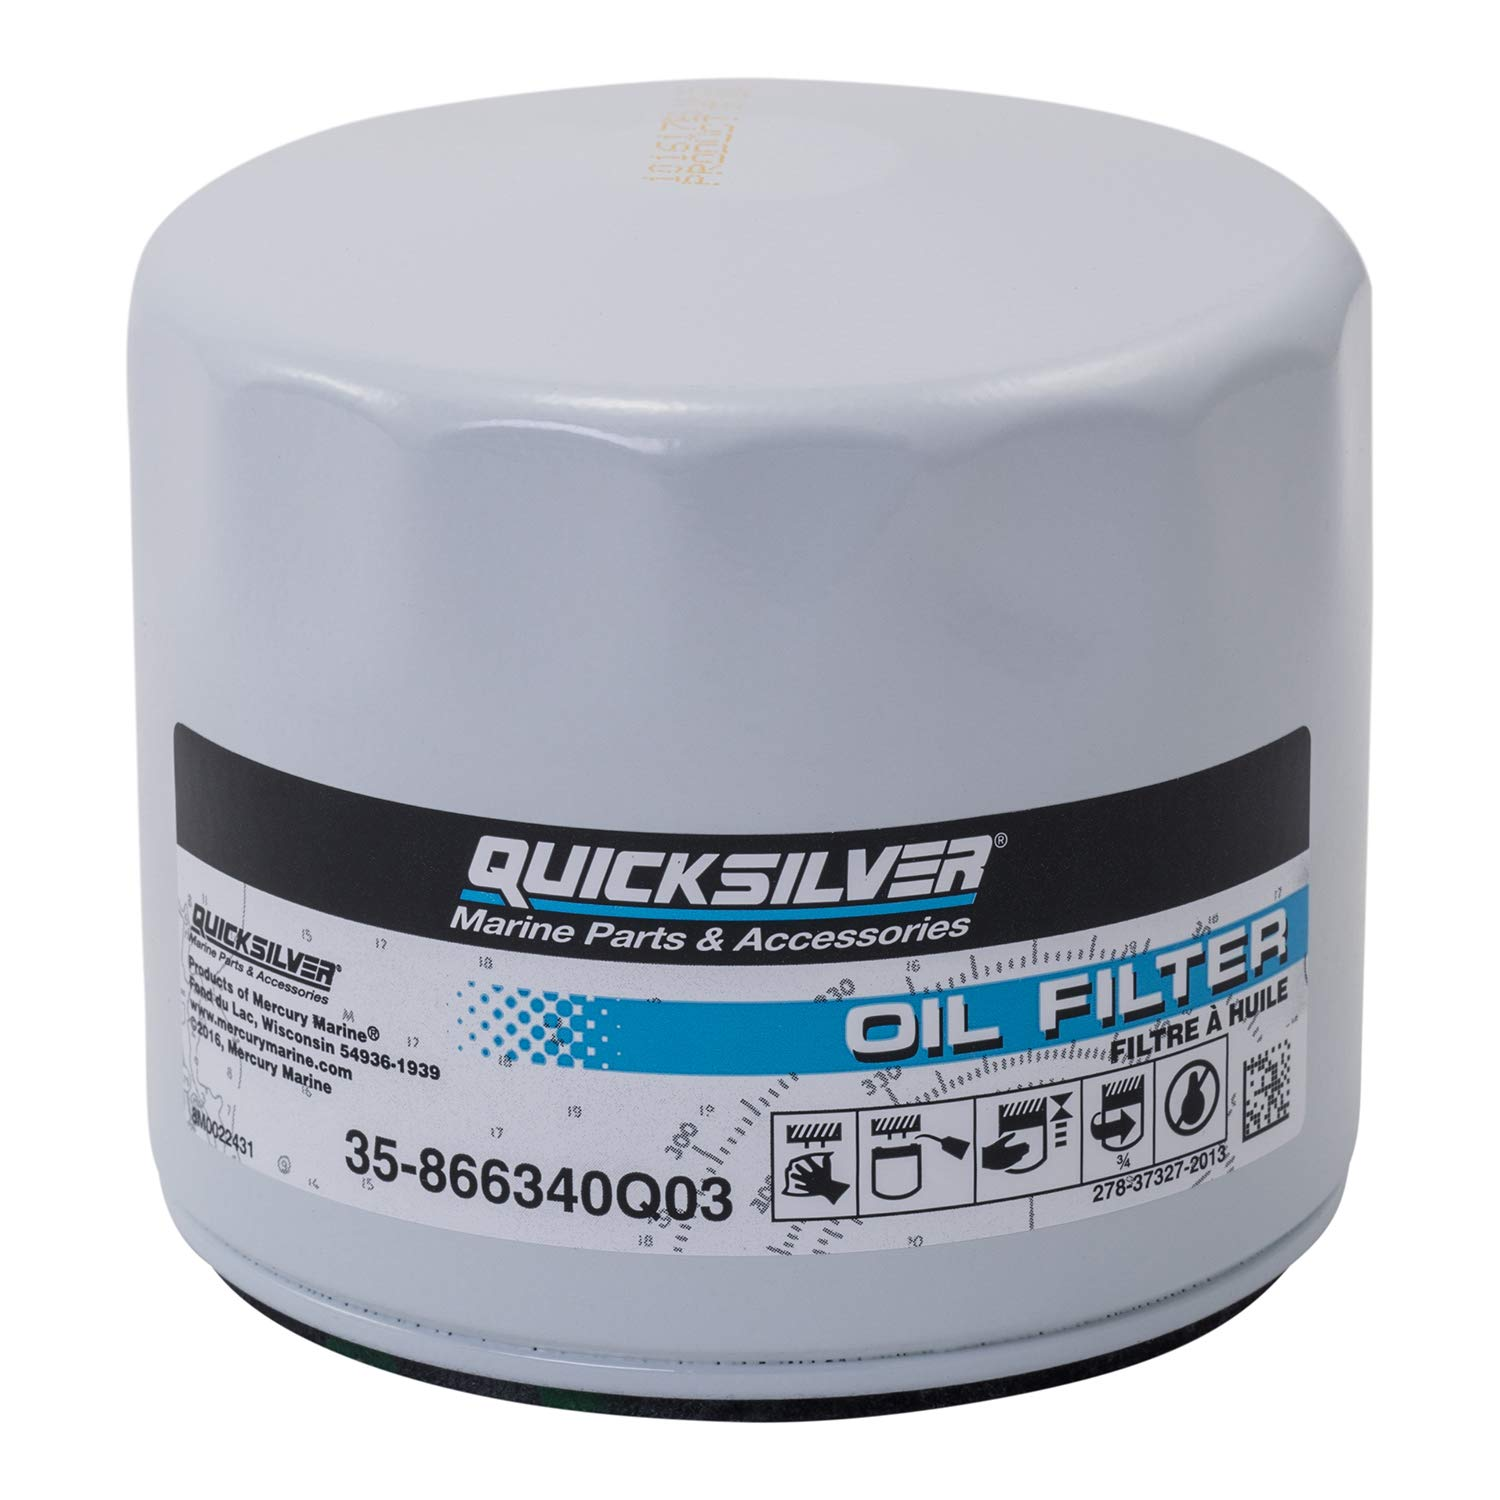 Quicksilver 866340Q03 Oil Filter - MerCruiser Stern Drive and Inboard Engines Mercury Marine